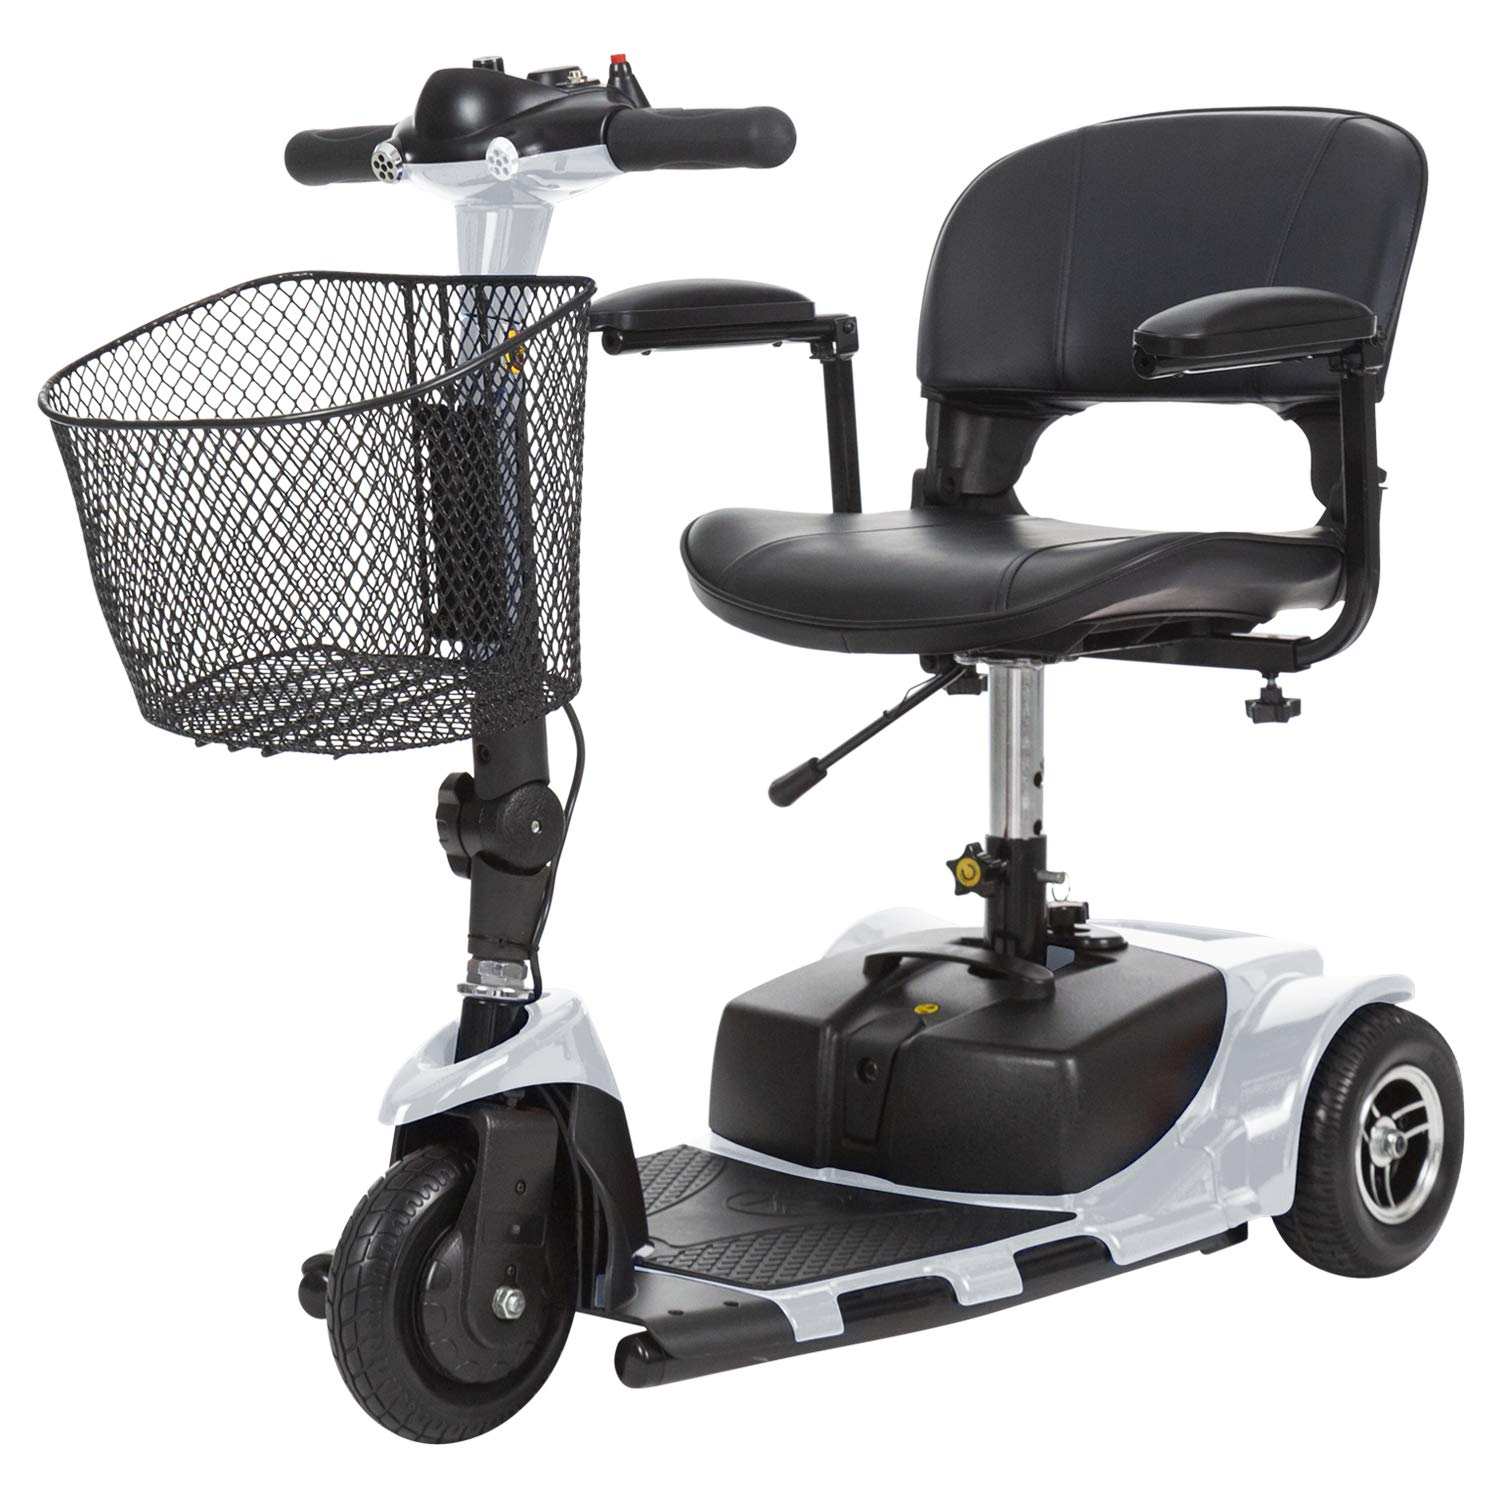 Vive 3-Wheel Mobility Scooter - Electric Powered Mobile Wheelchair Device for Adults - Folding, Collabsible and Compact for Travel - Long Range Power Extended Battery with Charger and Basket Included by Vive